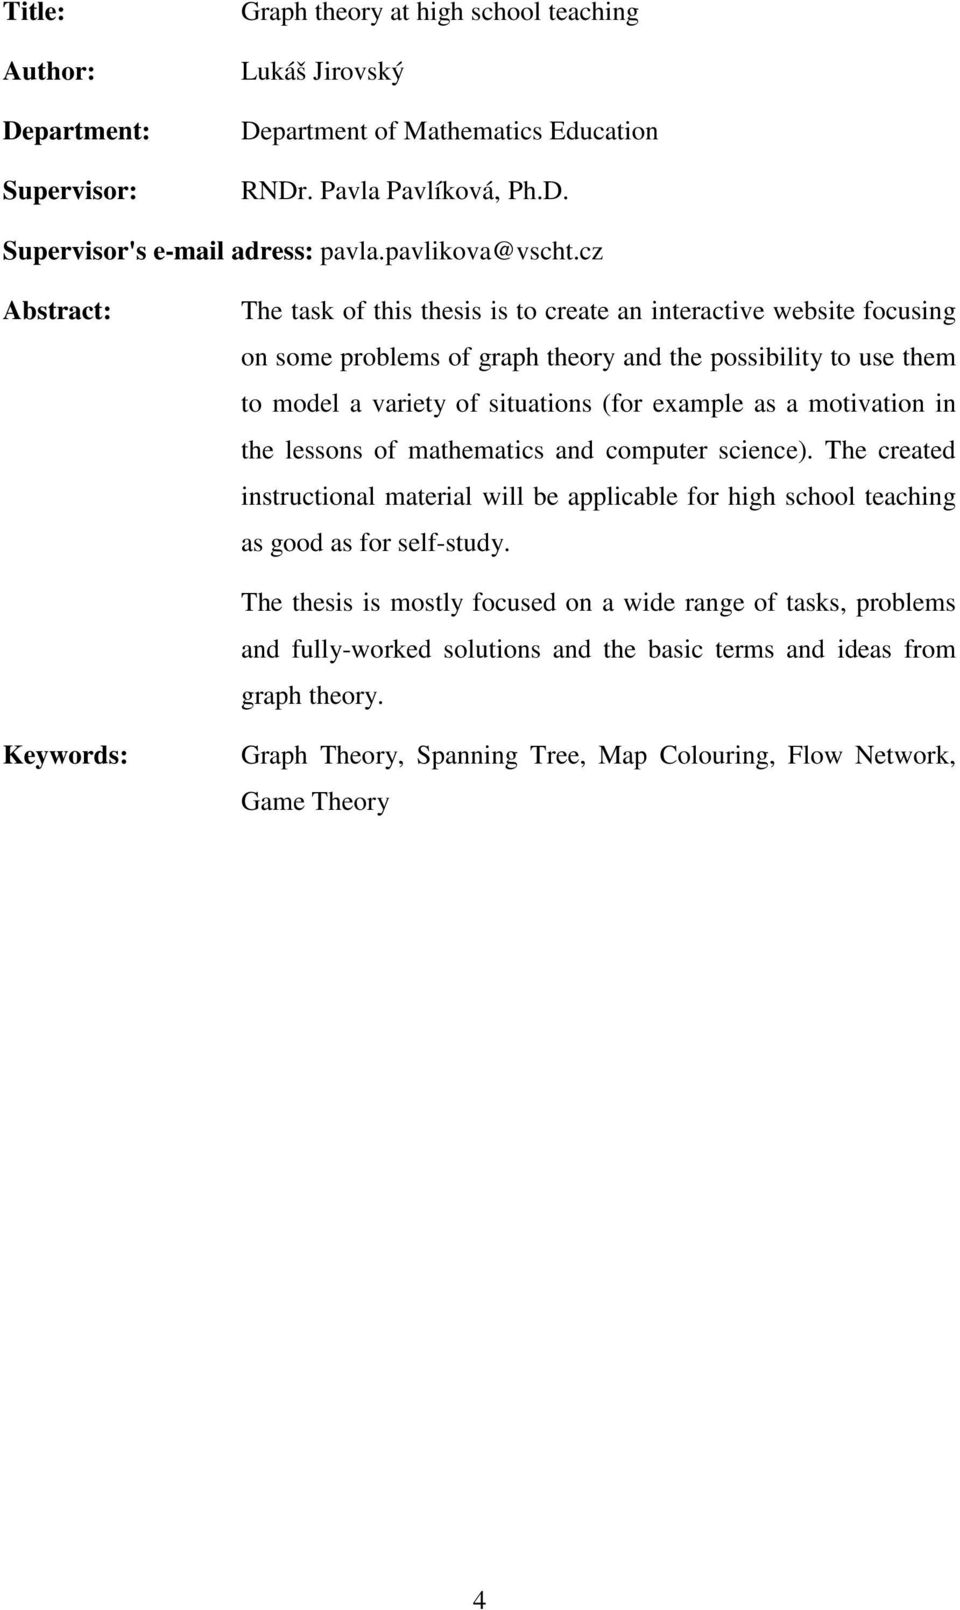 cz Abstract: The task of this thesis is to create an interactive website focusing on some problems of graph theory and the possibility to use them to model a variety of situations (for example as a